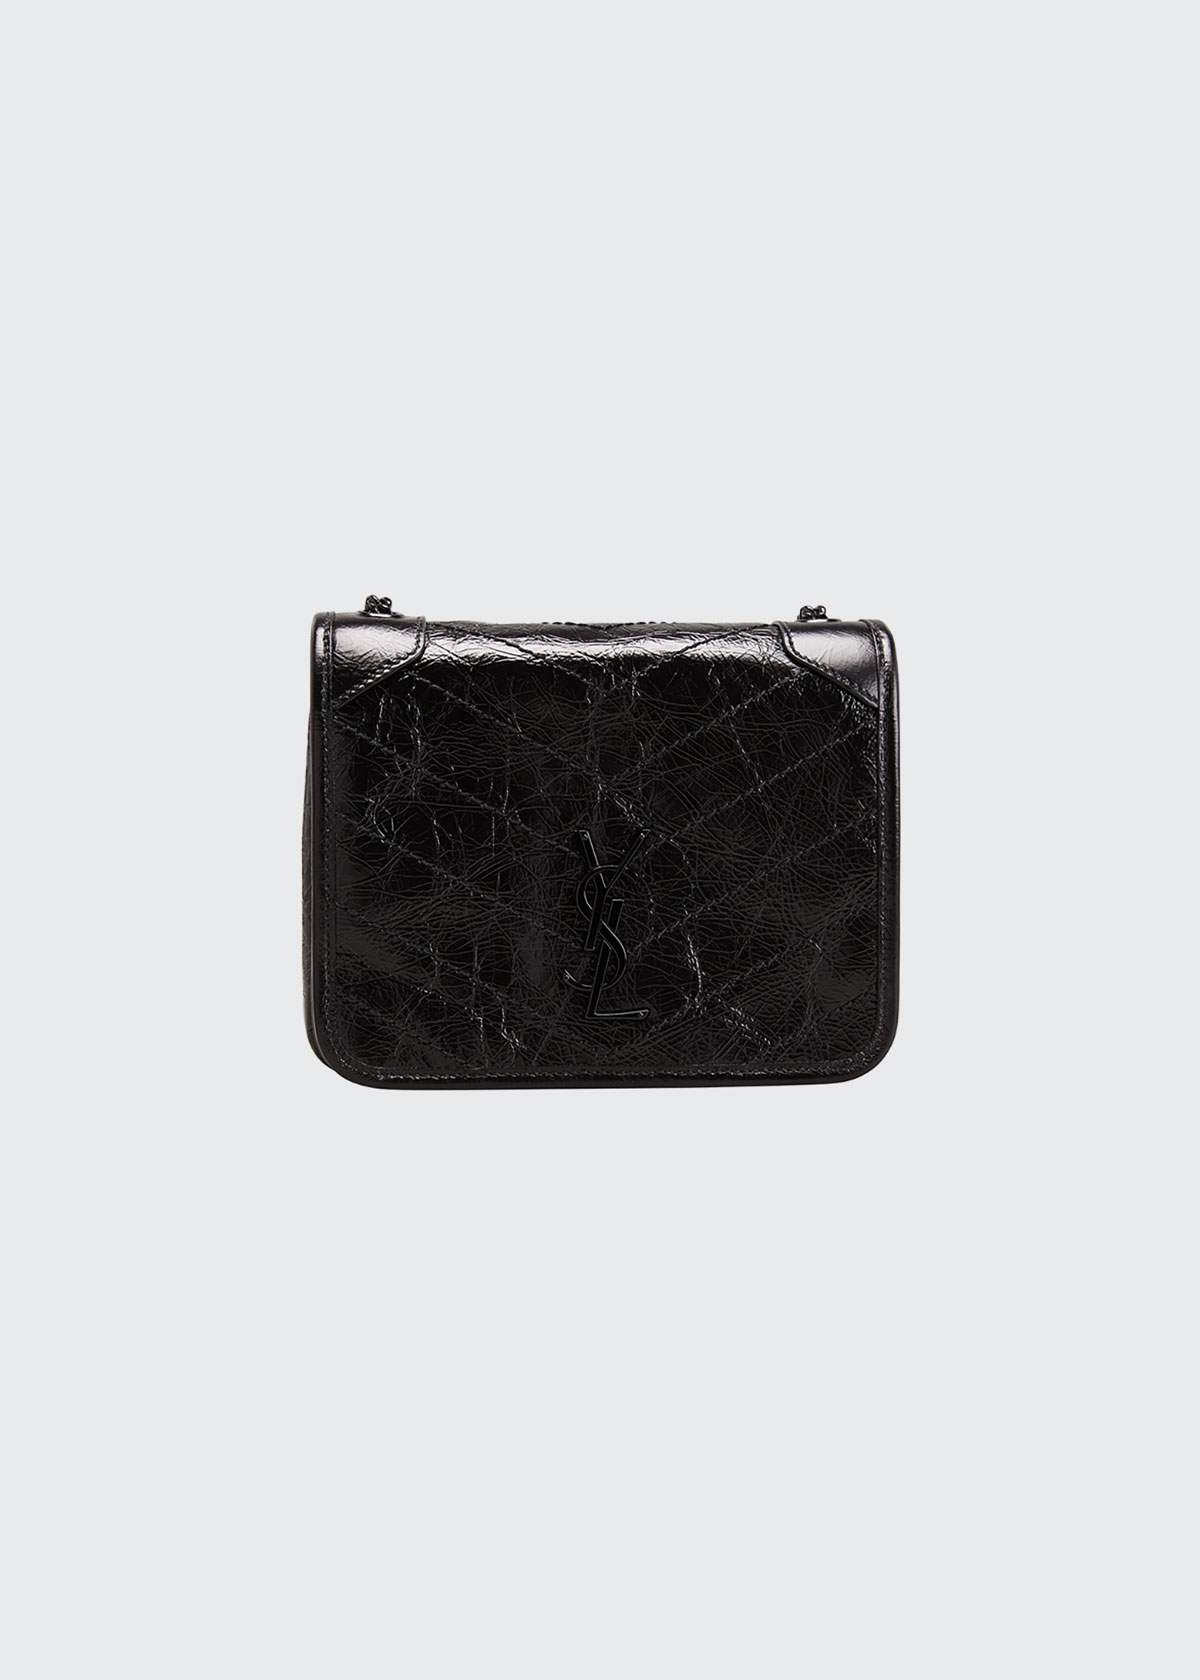 Saint Laurent Wallets TEXTURED LEATHER WALLET